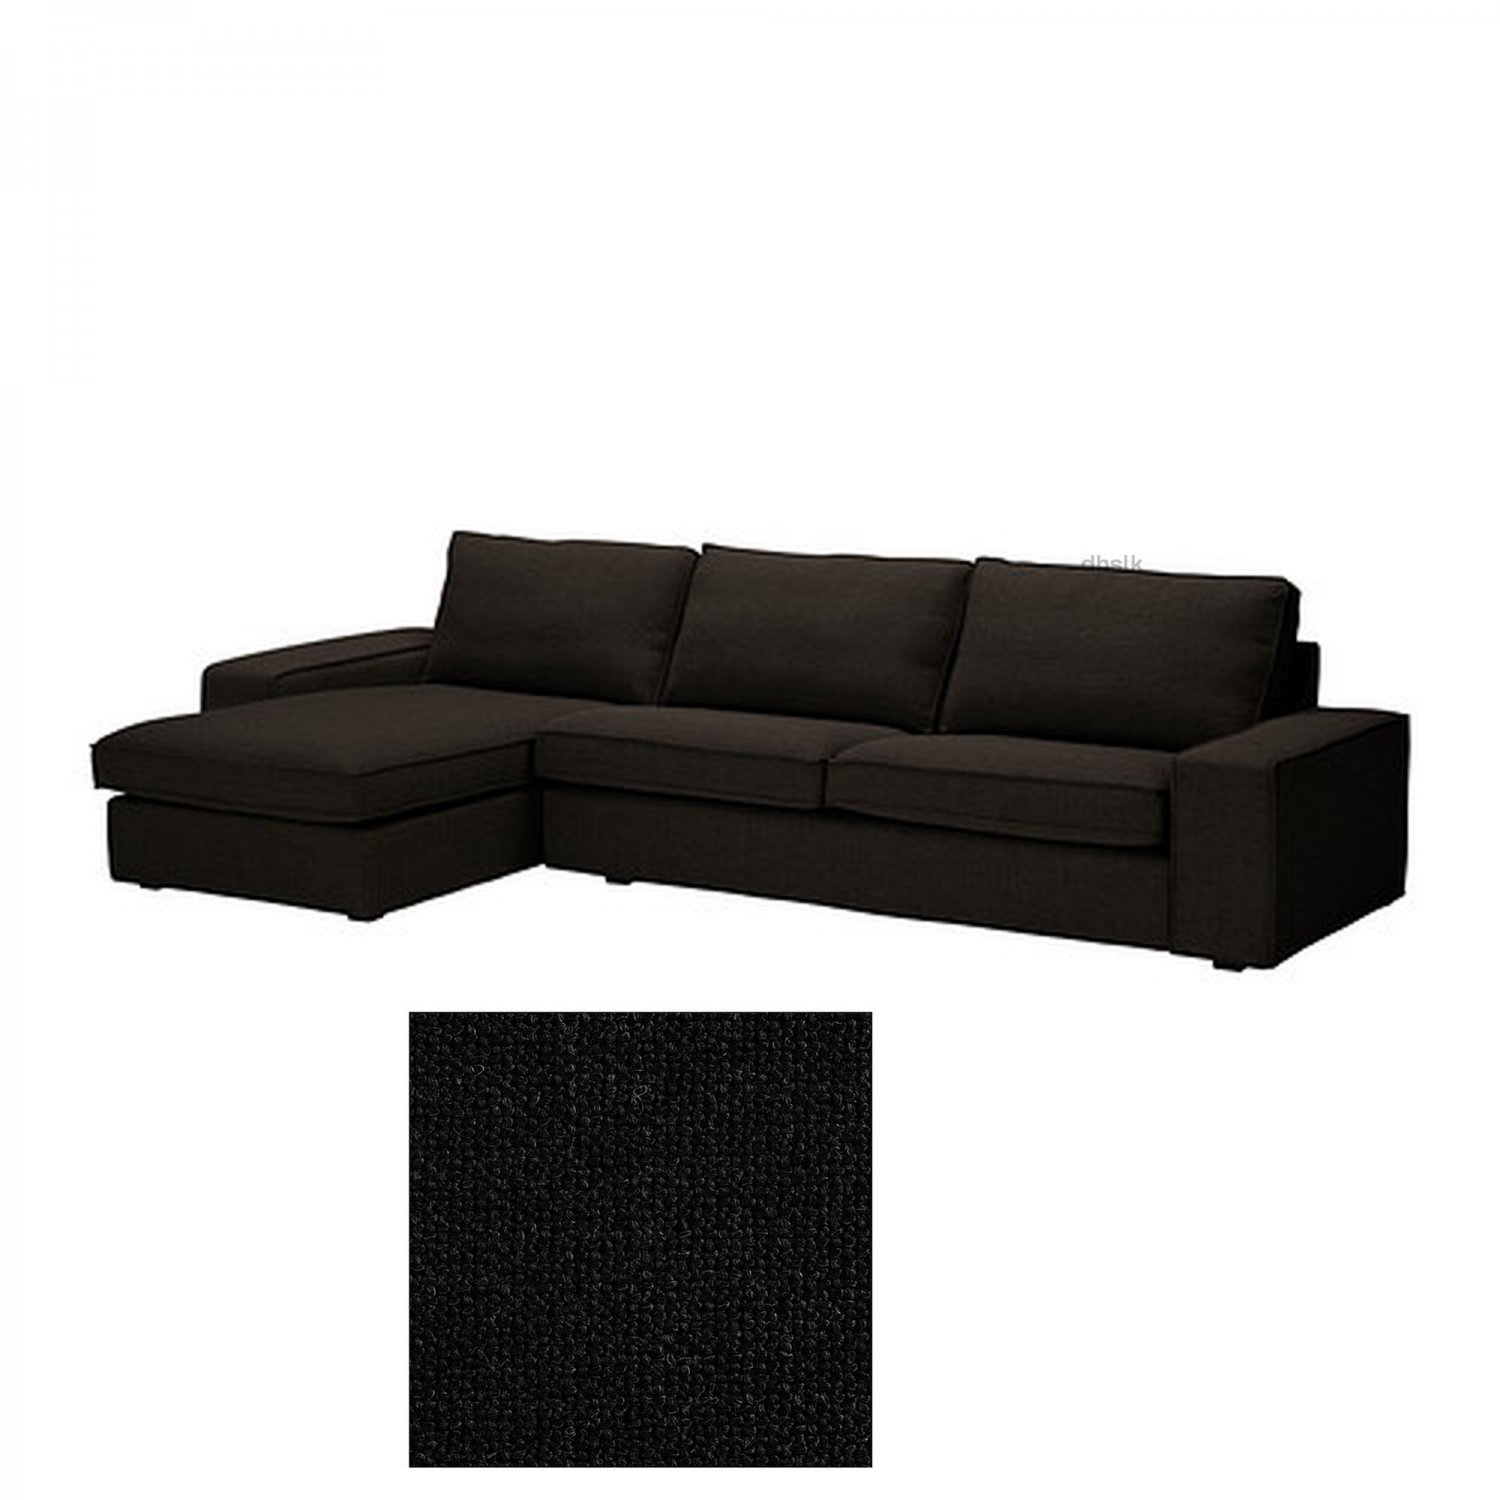 Ikea kivik 3 seat sofa w chaise longue slipcover cover teno black ten - Ikea chaise stockholm ...